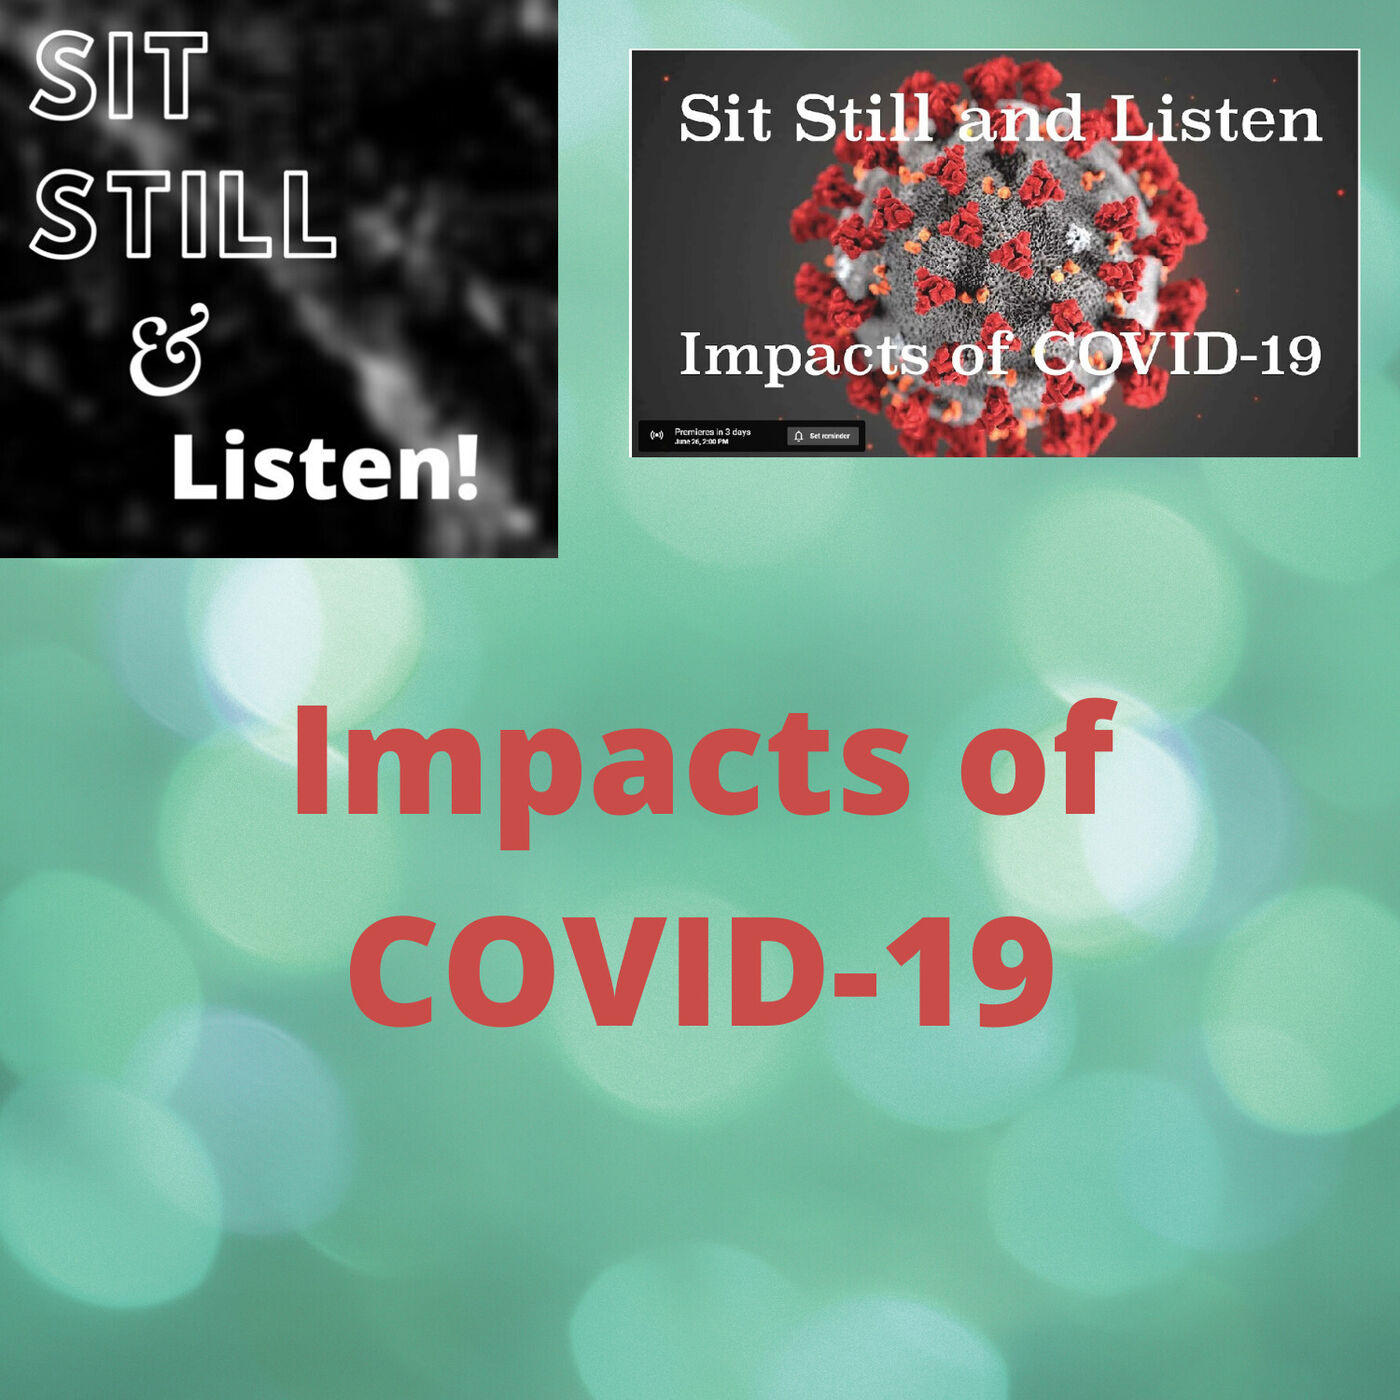 Impacts of Covid19